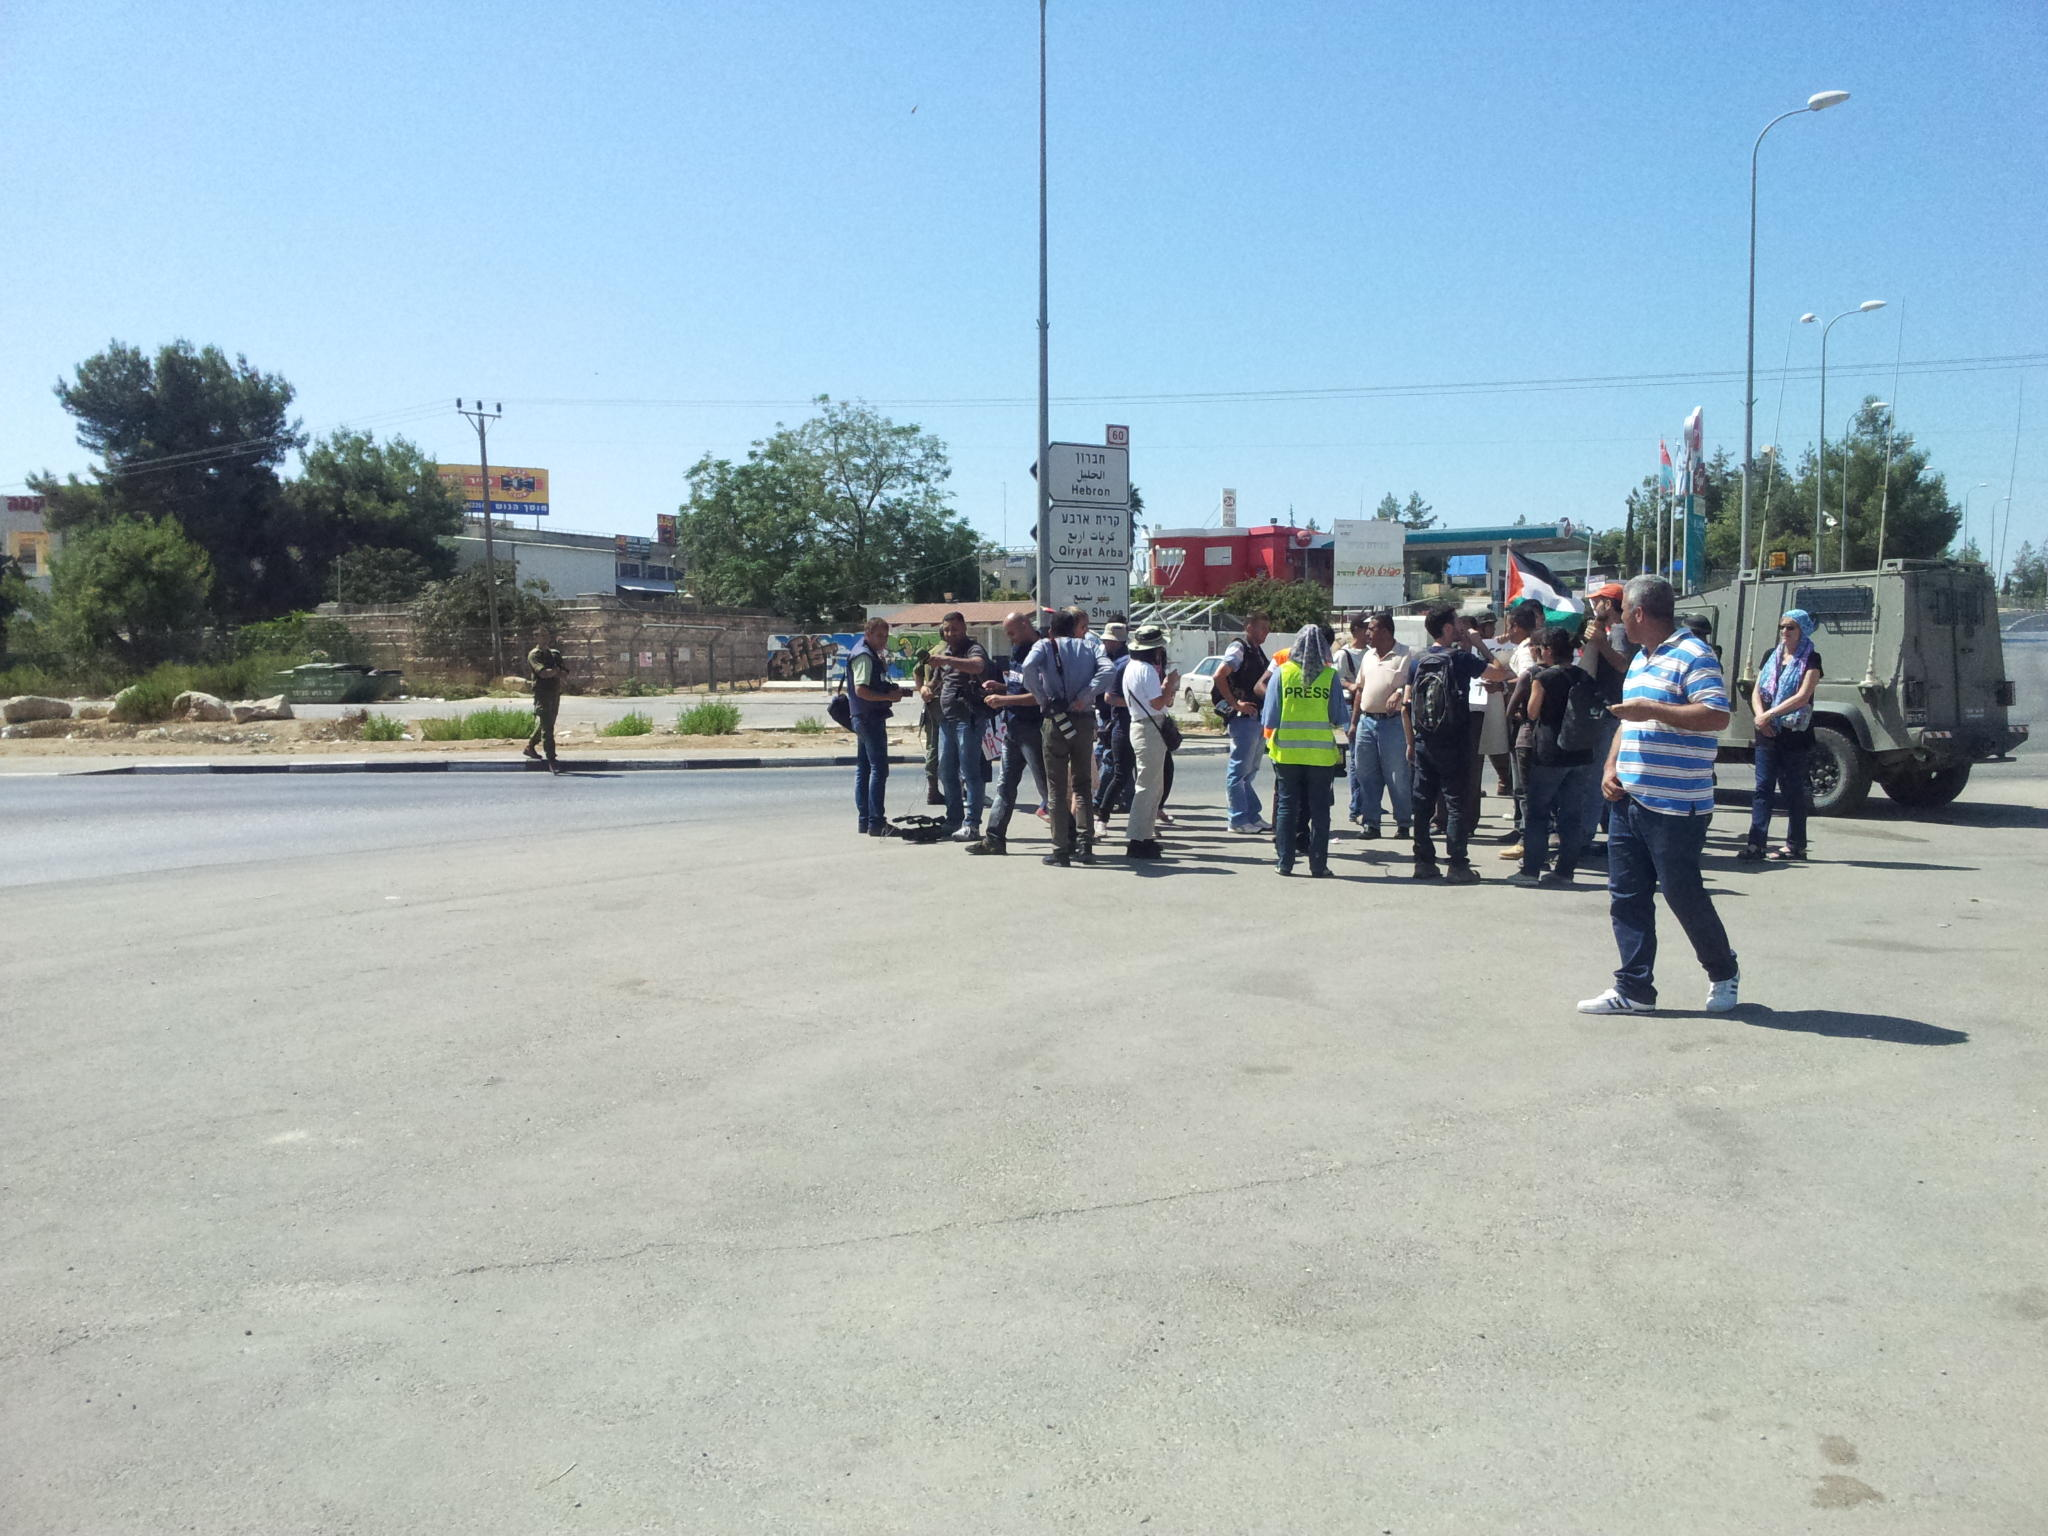 RT @AwallsA: #BeitUmmar protest on Road 60 against settlements and occupation by #Israel http://t.co/rb2bkiVq